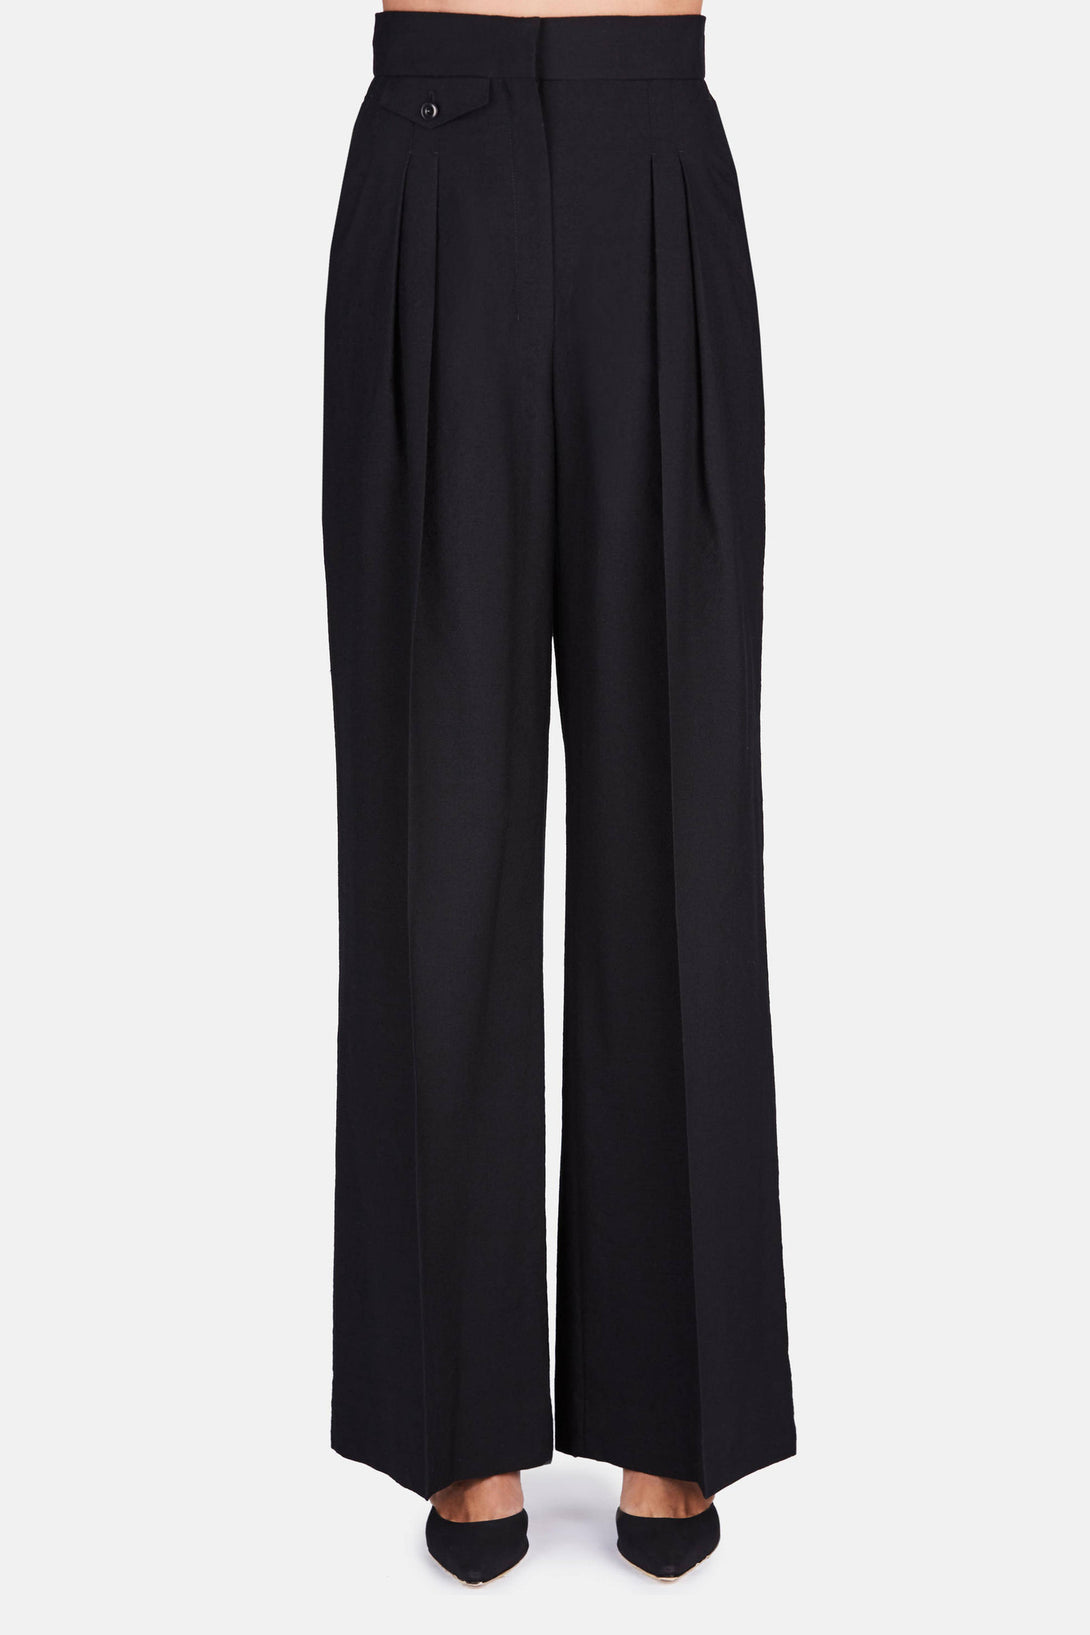 Two-Pleated Pants - Black